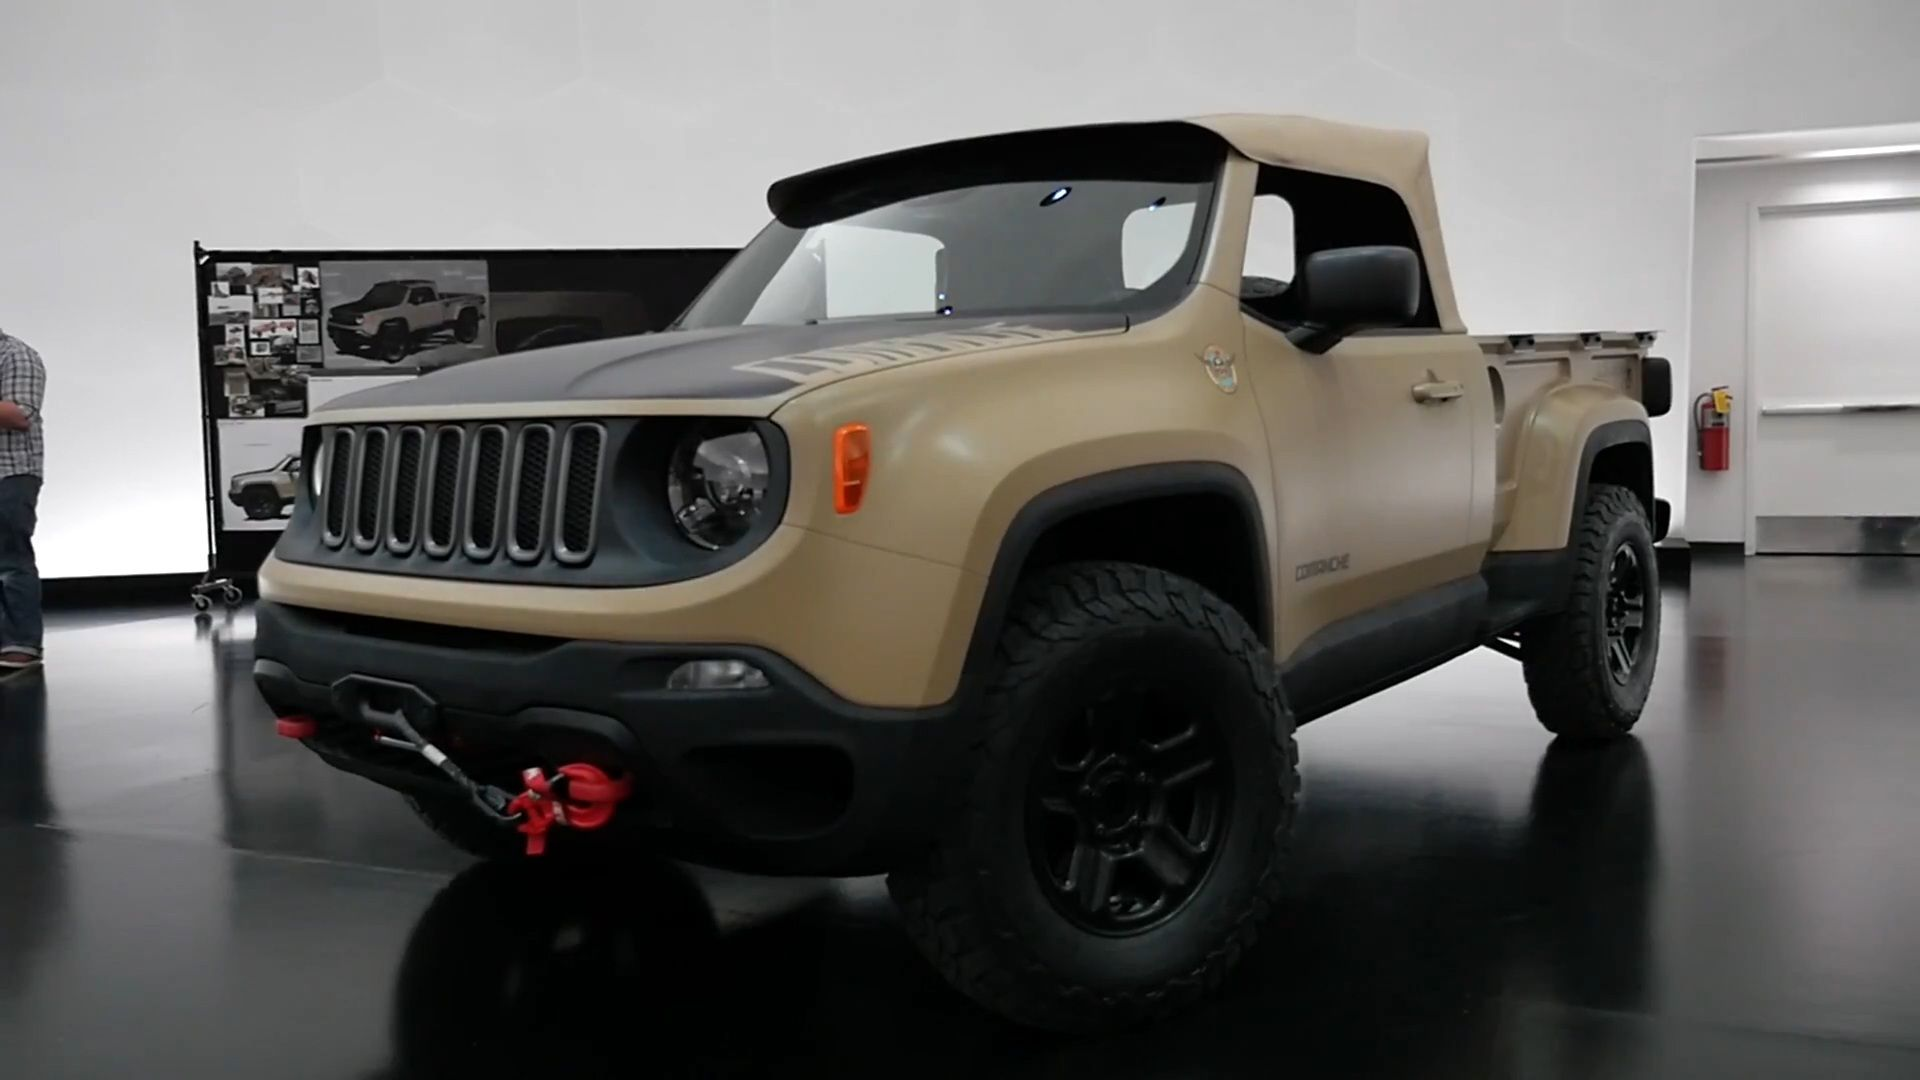 Jeep Renegade Comanche Pickup Concept Jeep Renegade Jeep Jeep